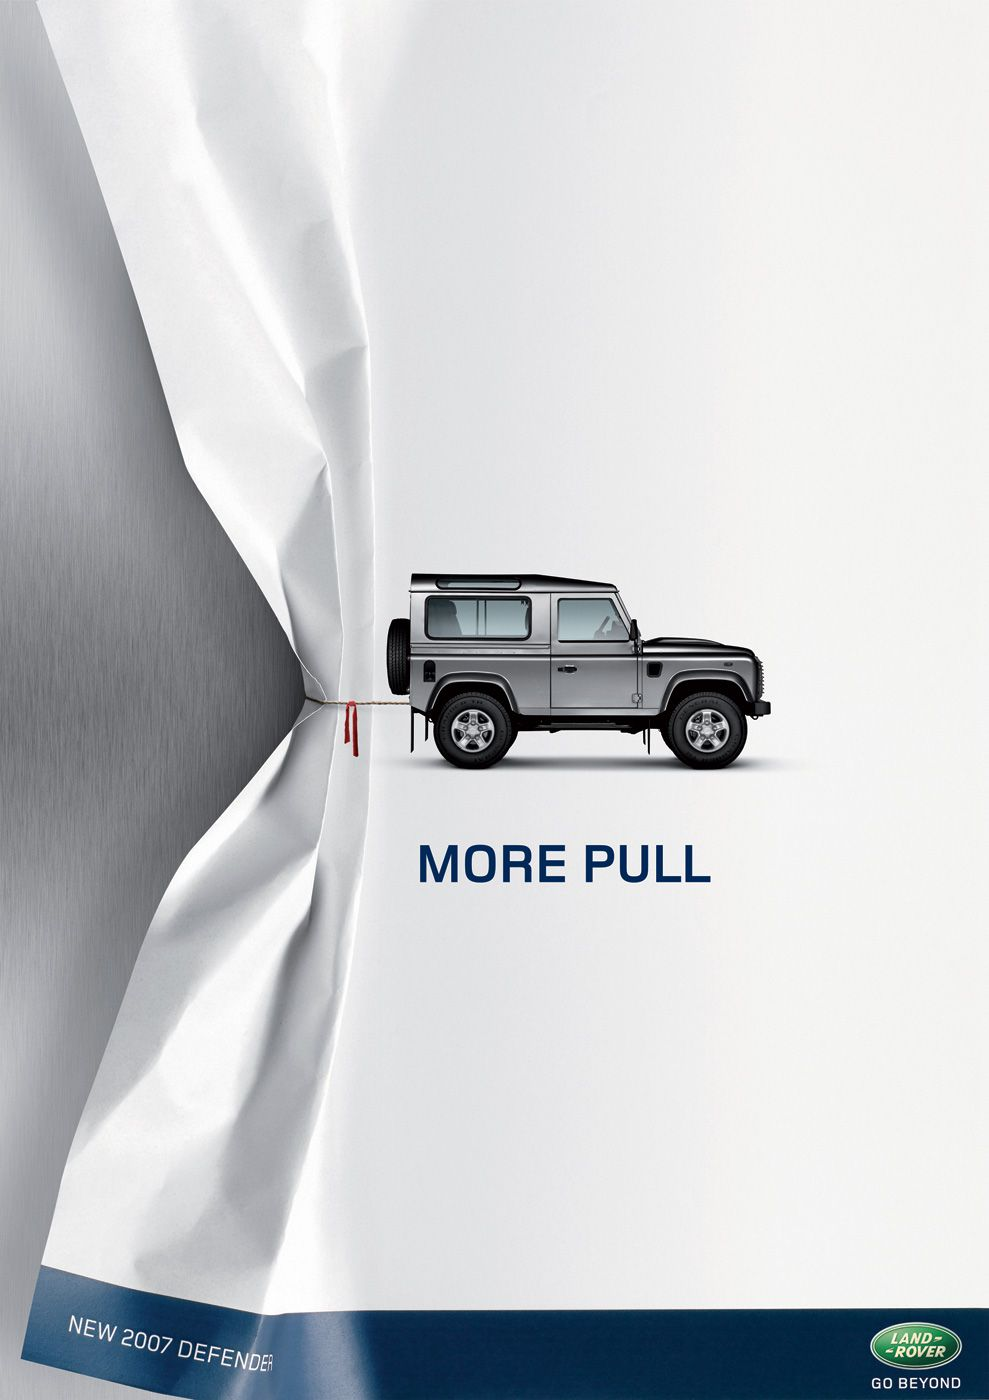 landrovermorepull | posters | Pinterest | Land rovers, Ads and ...